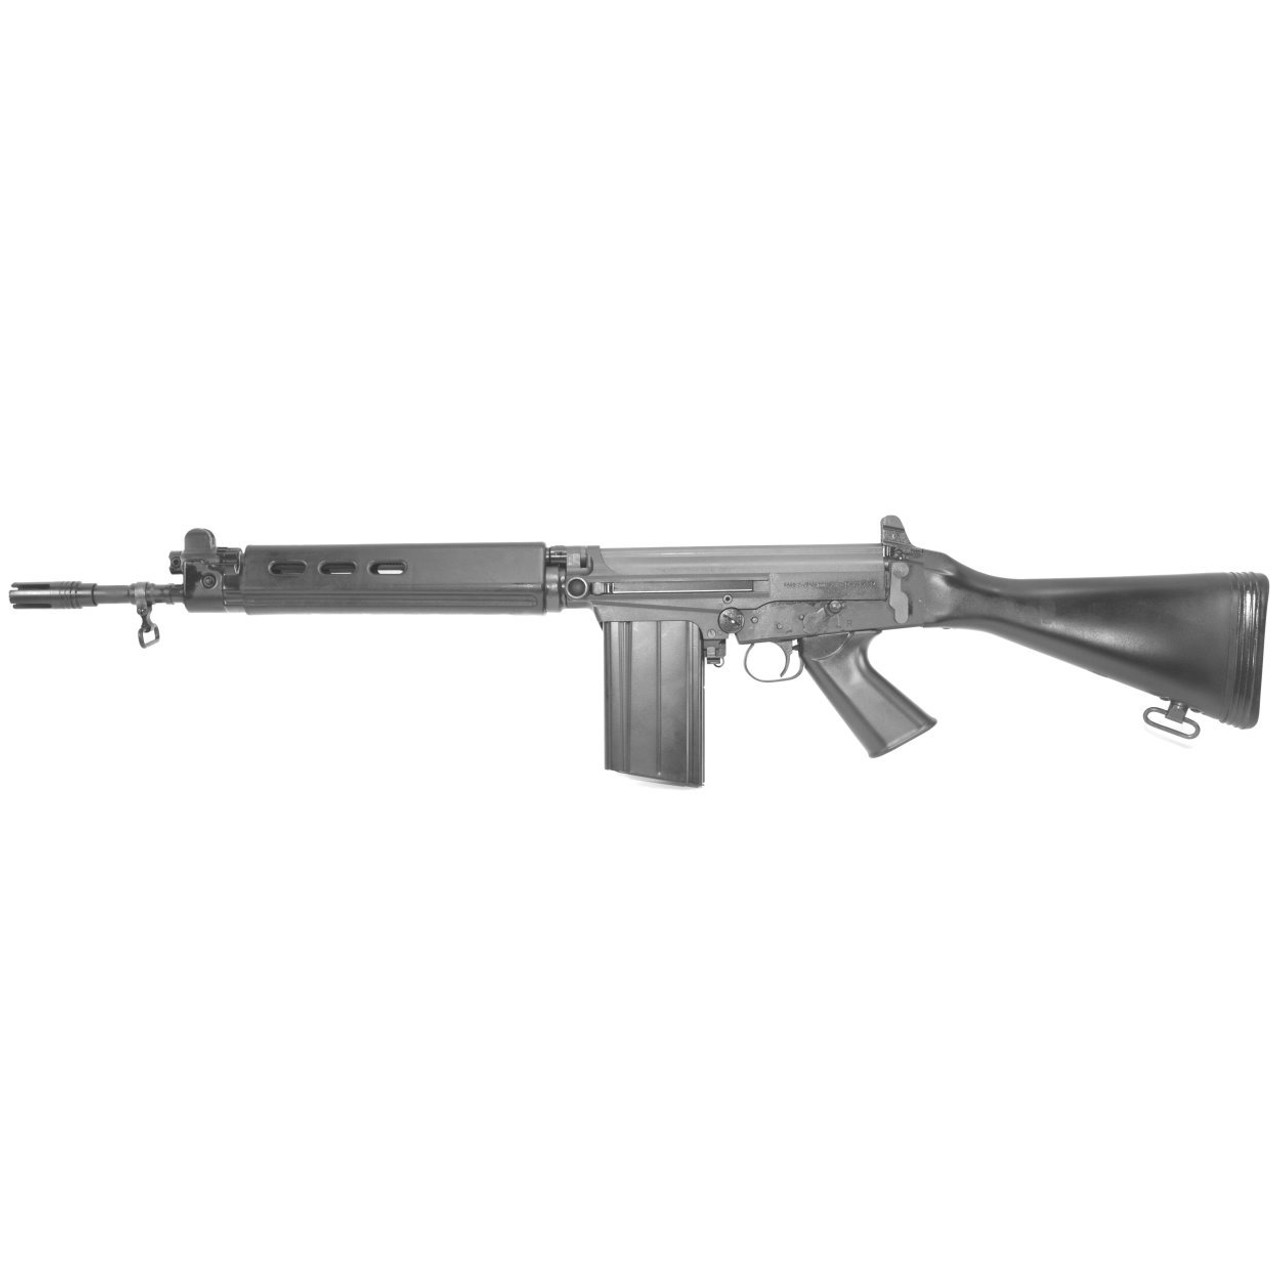 DS ARMS FAL SA58 Voyager 16in CALIFORNIA LEGAL 7.62x51